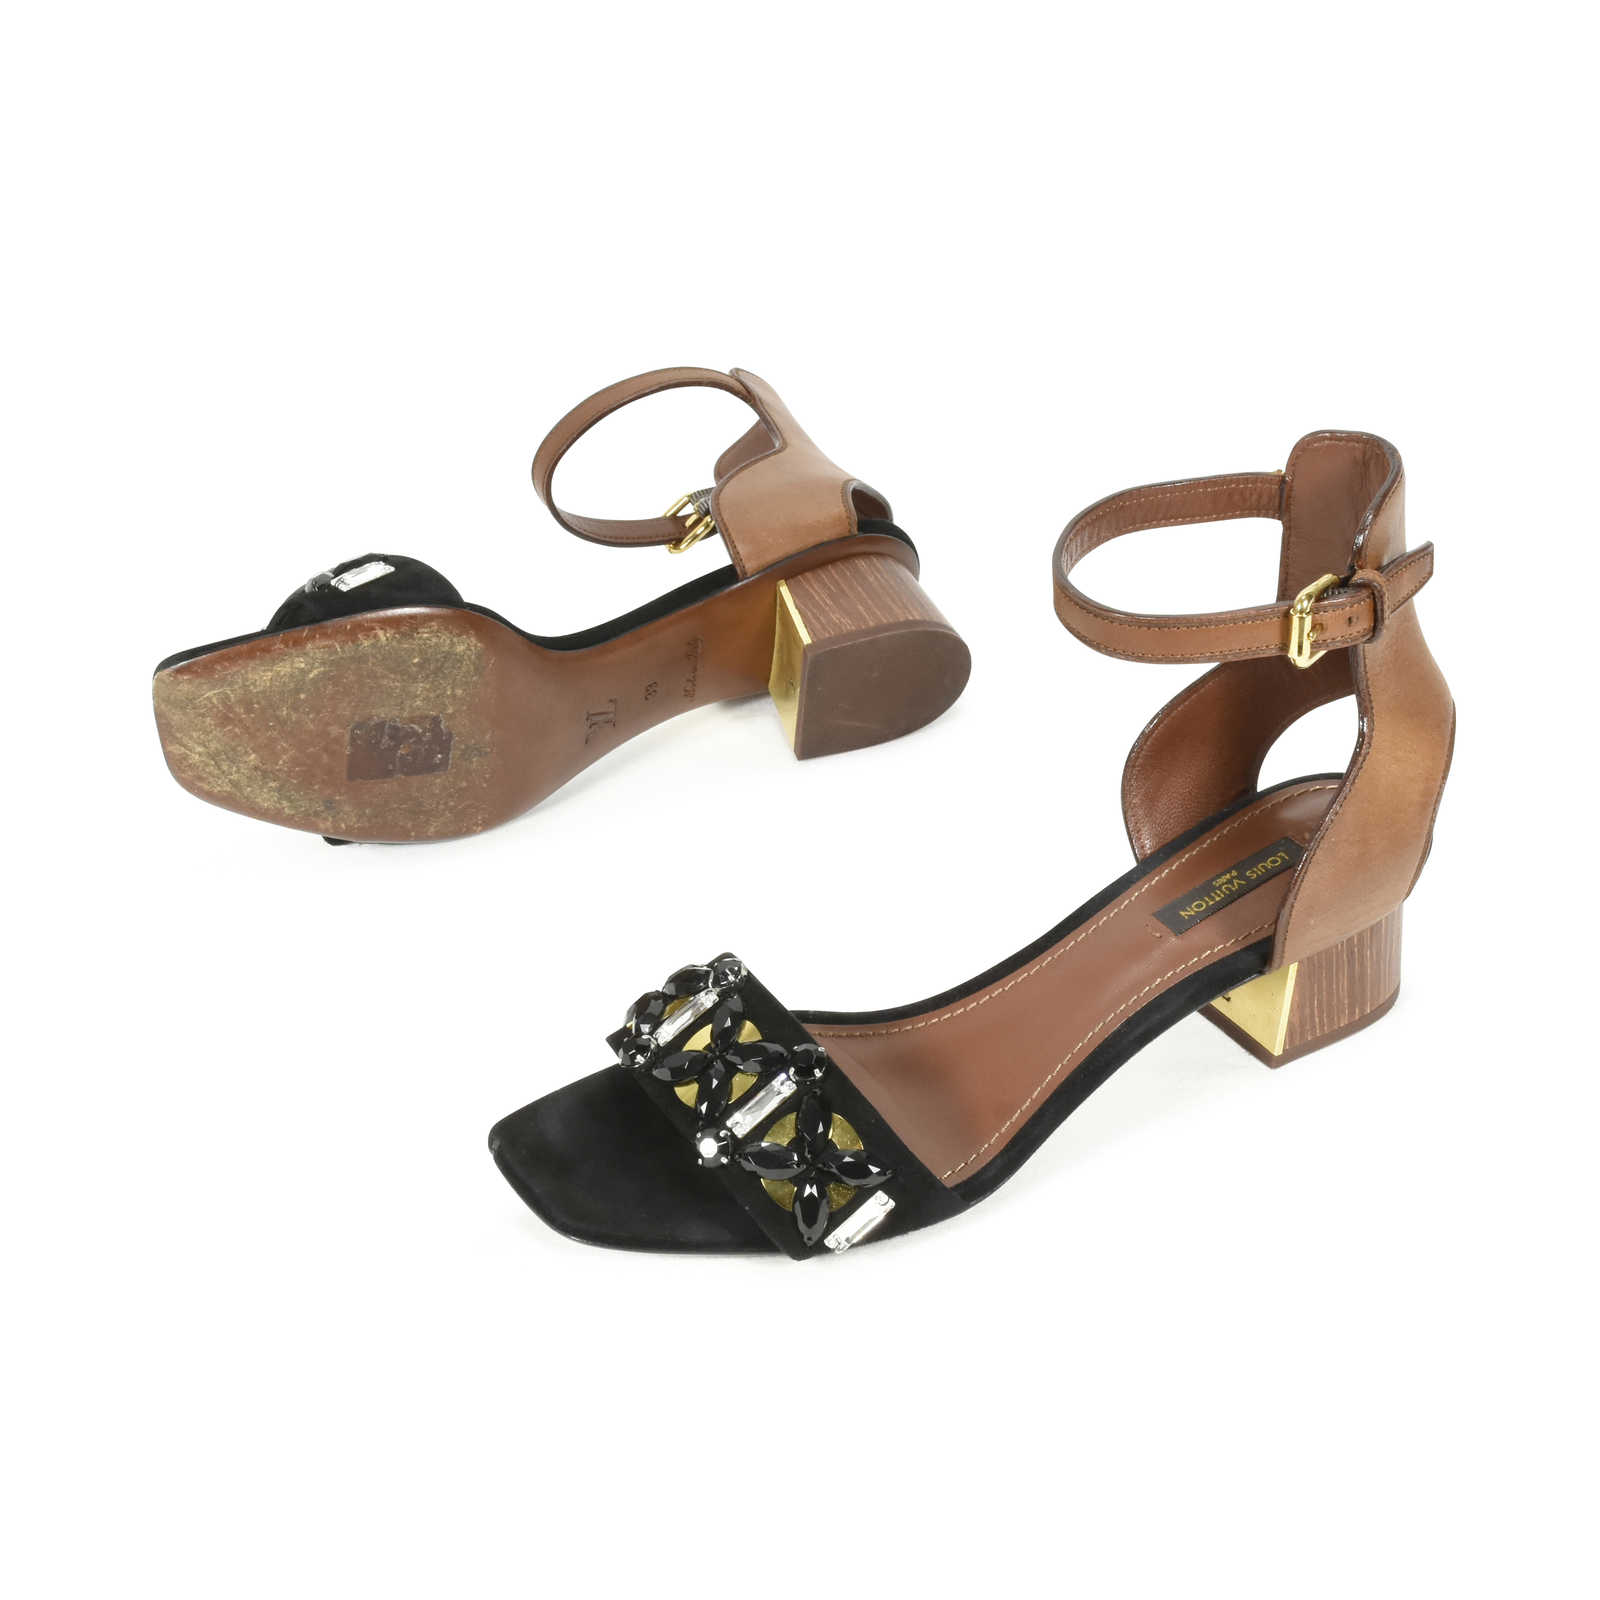 4c1cf9b236f4 ... Authentic Second Hand Louis Vuitton Embellished Sandals (PSS-457-00001)  - Thumbnail ...